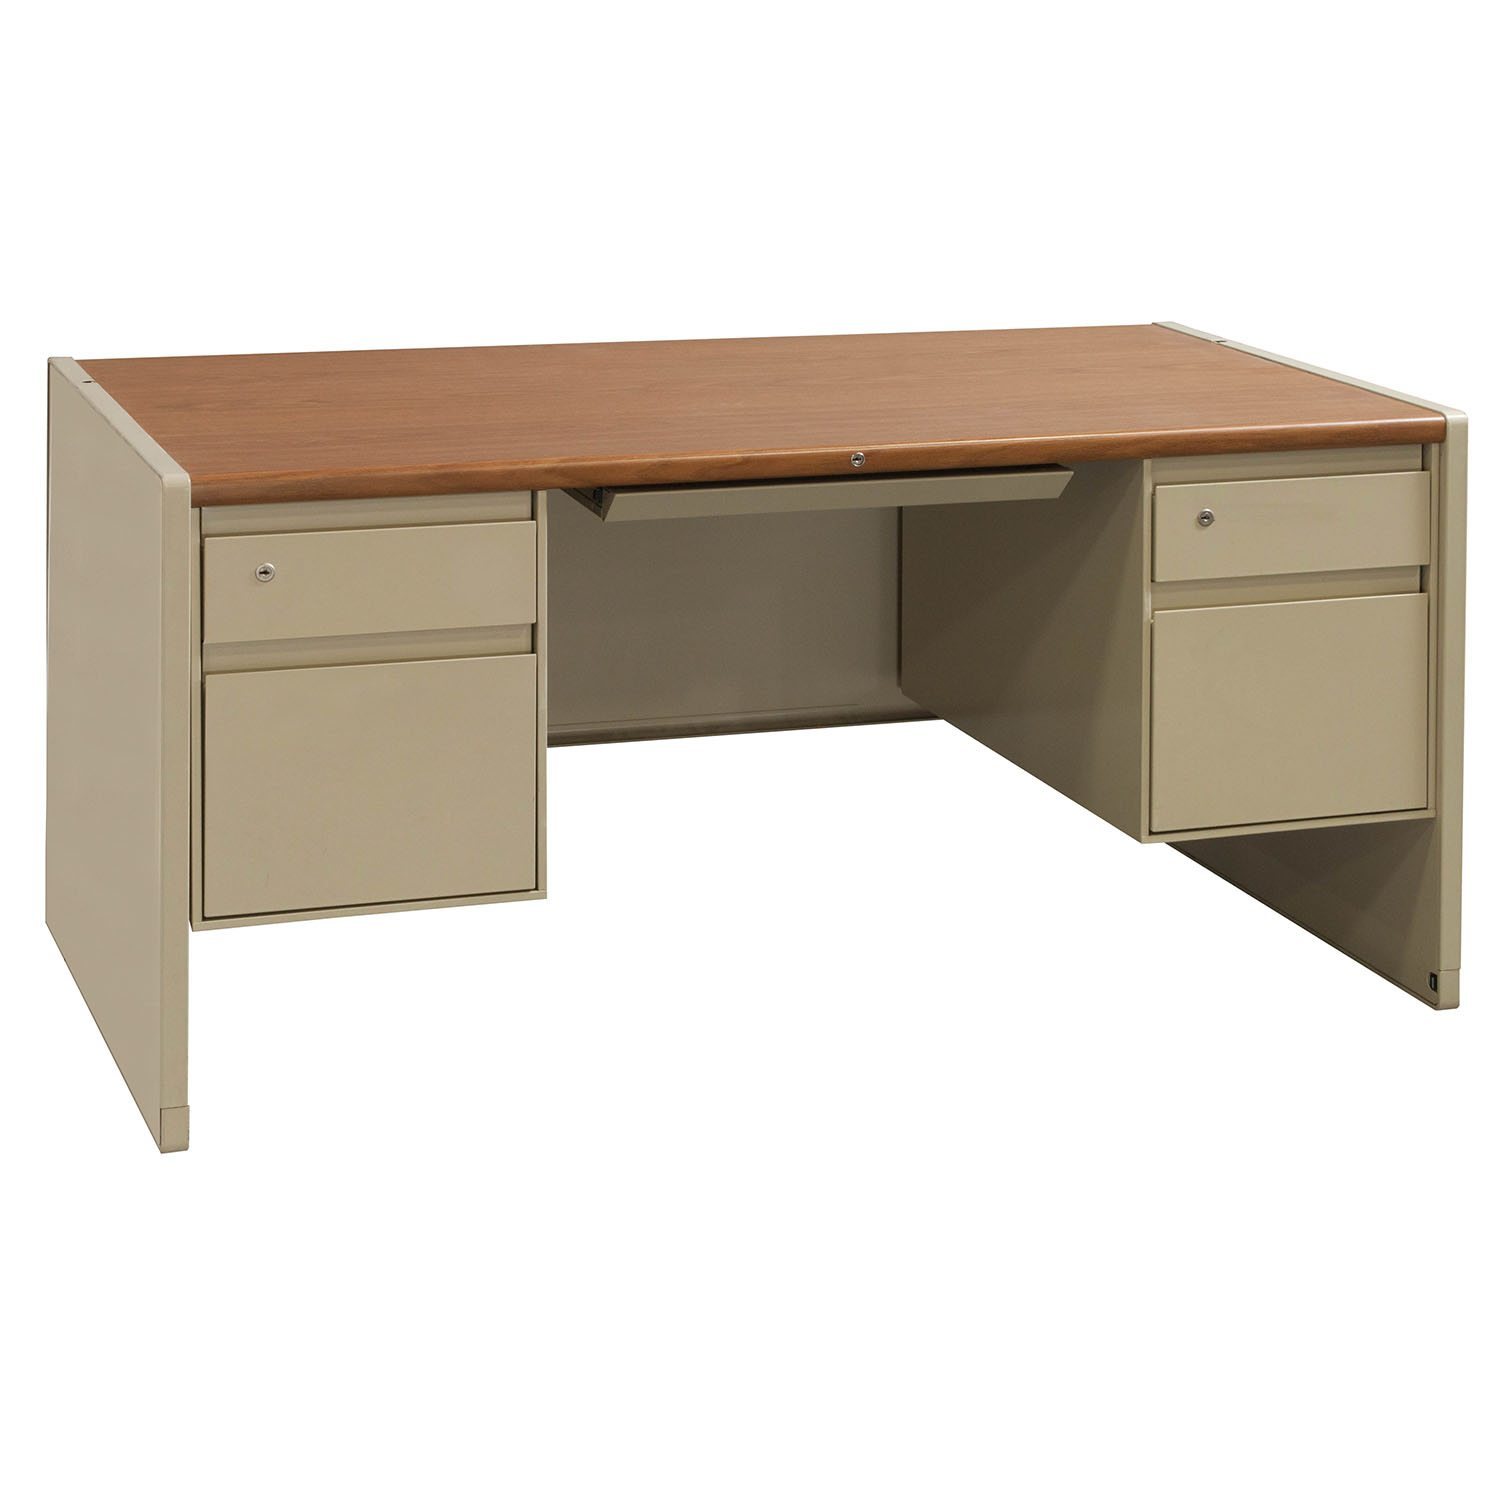 Steelcase Metal Used 30 60 Double Pedestal Desk Putty